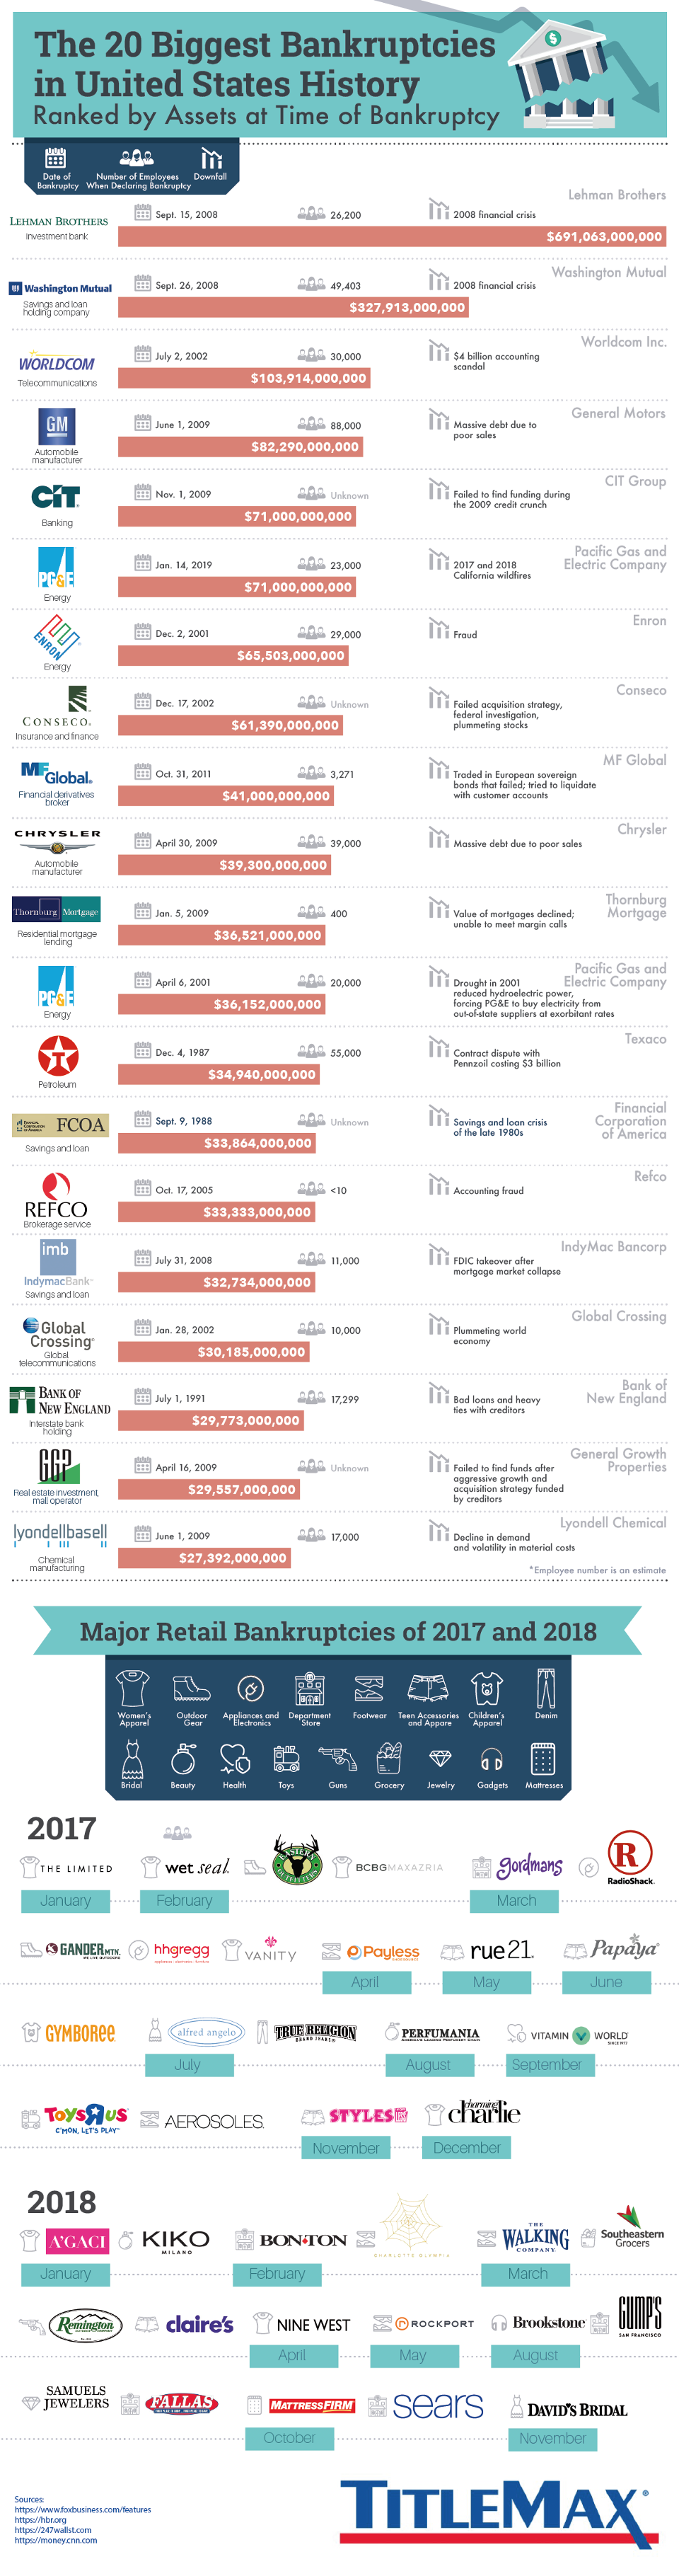 The 20 Biggest Bankruptcies in U.S History #infographic